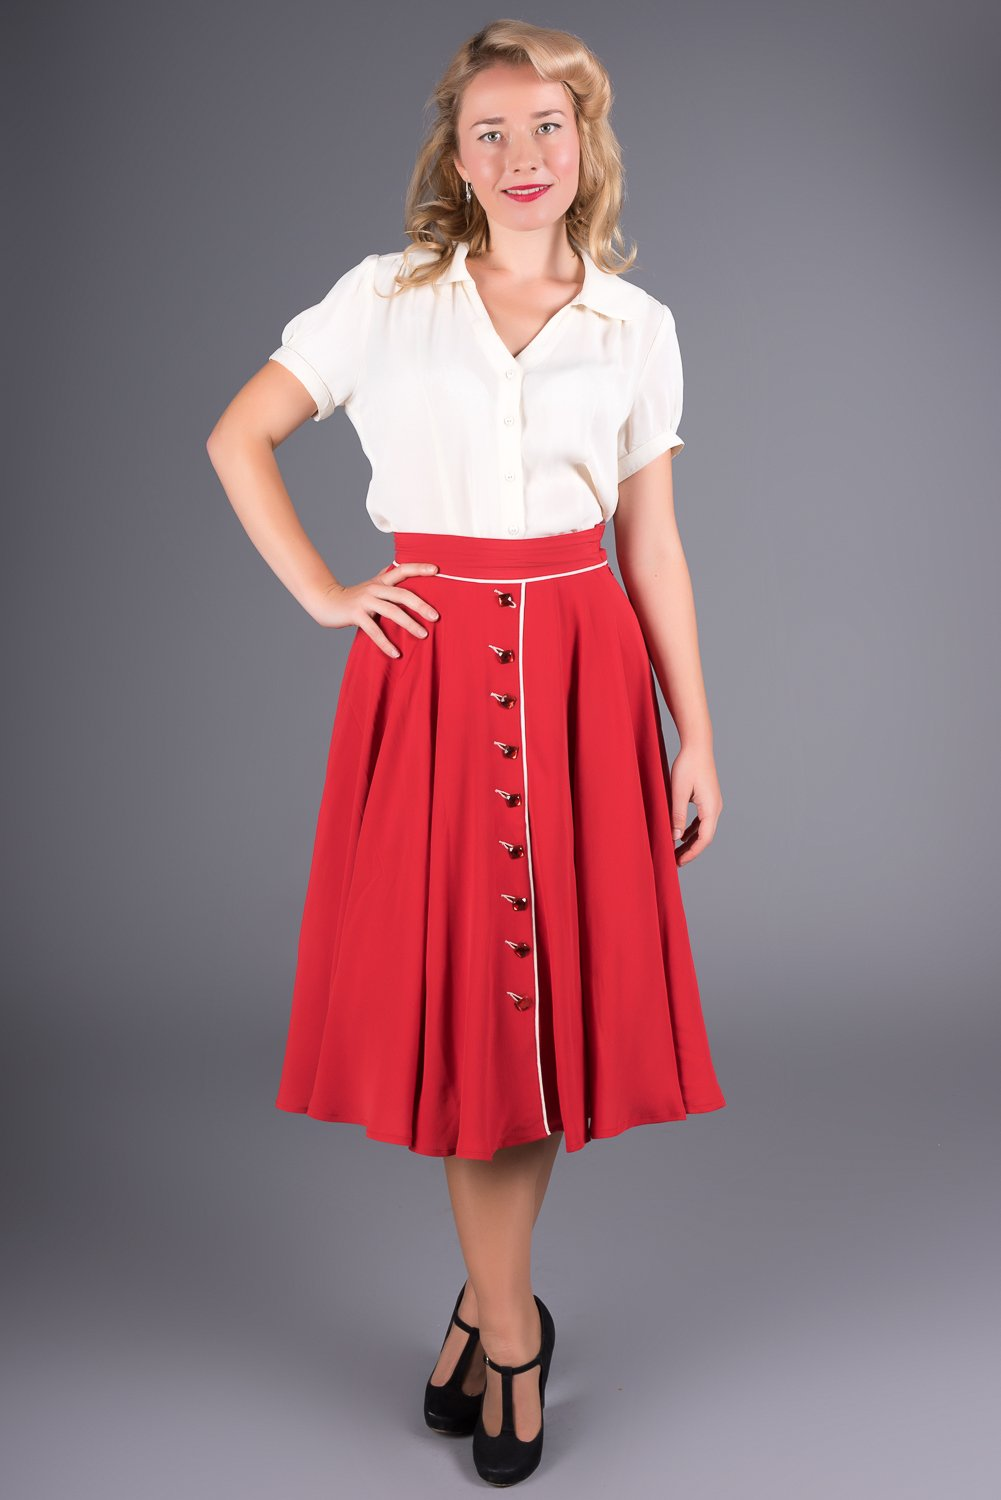 """Rita"" Swing Skirt in Red with Ivory Detailing, Classic 1940s Vintage Style by seamstress of bloomsbury"